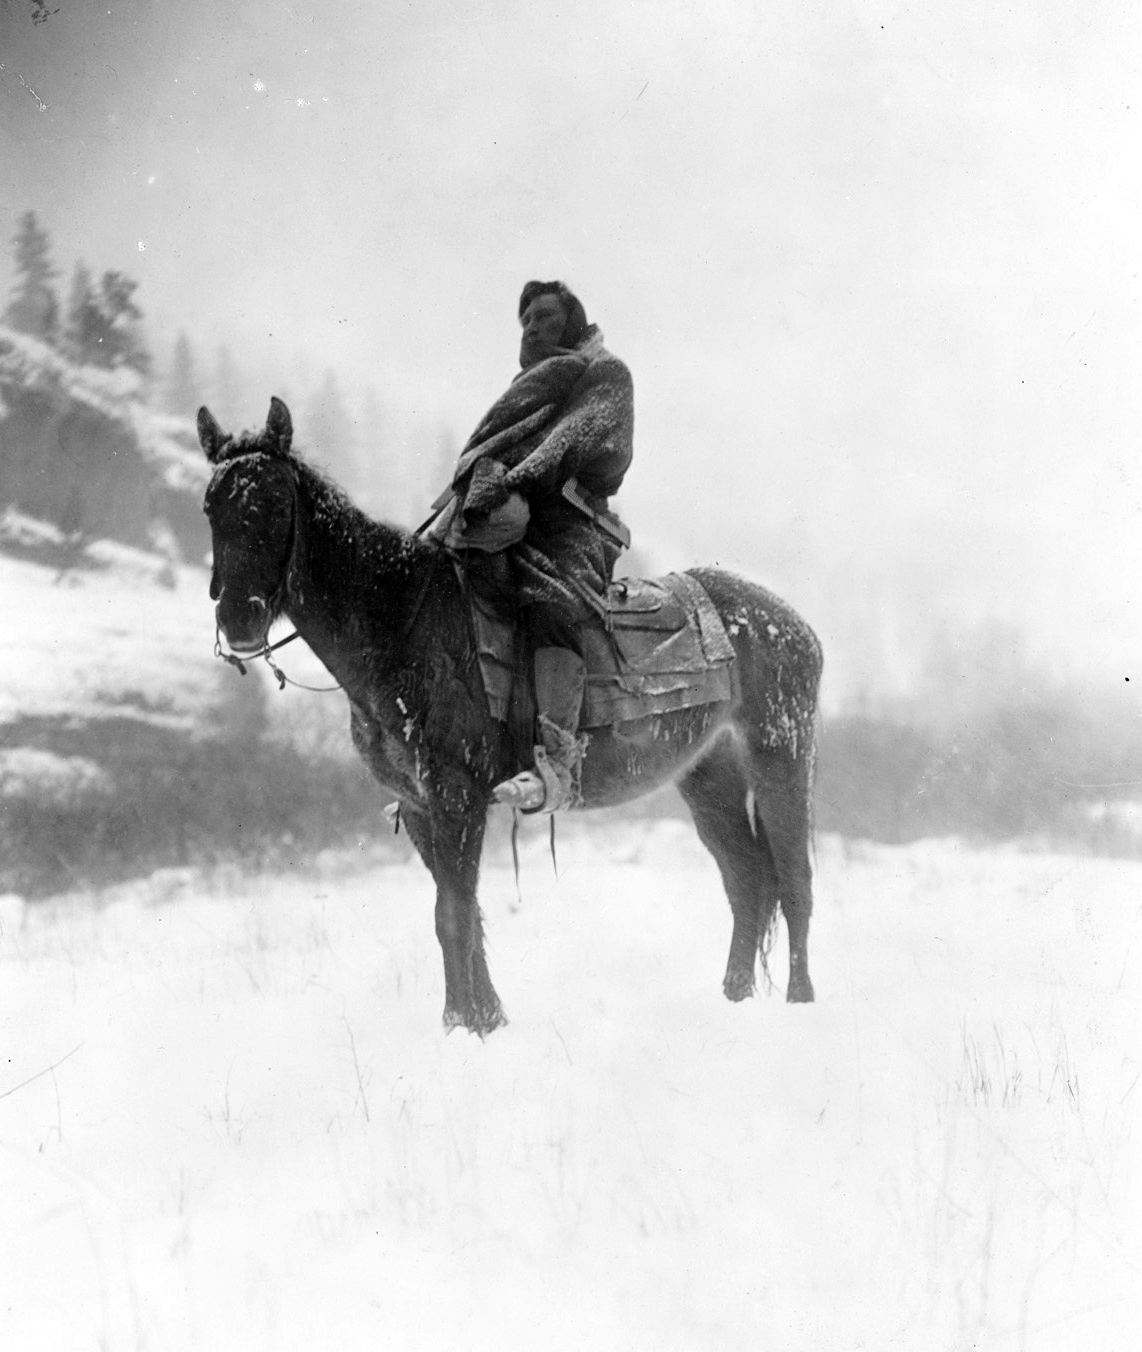 """""""The Scout in Winter—Apsaroke,"""" 1908. Photograph by Edward S. Curtis. United States Library of Congress, Prints and Photographs Division, Washington D.C."""